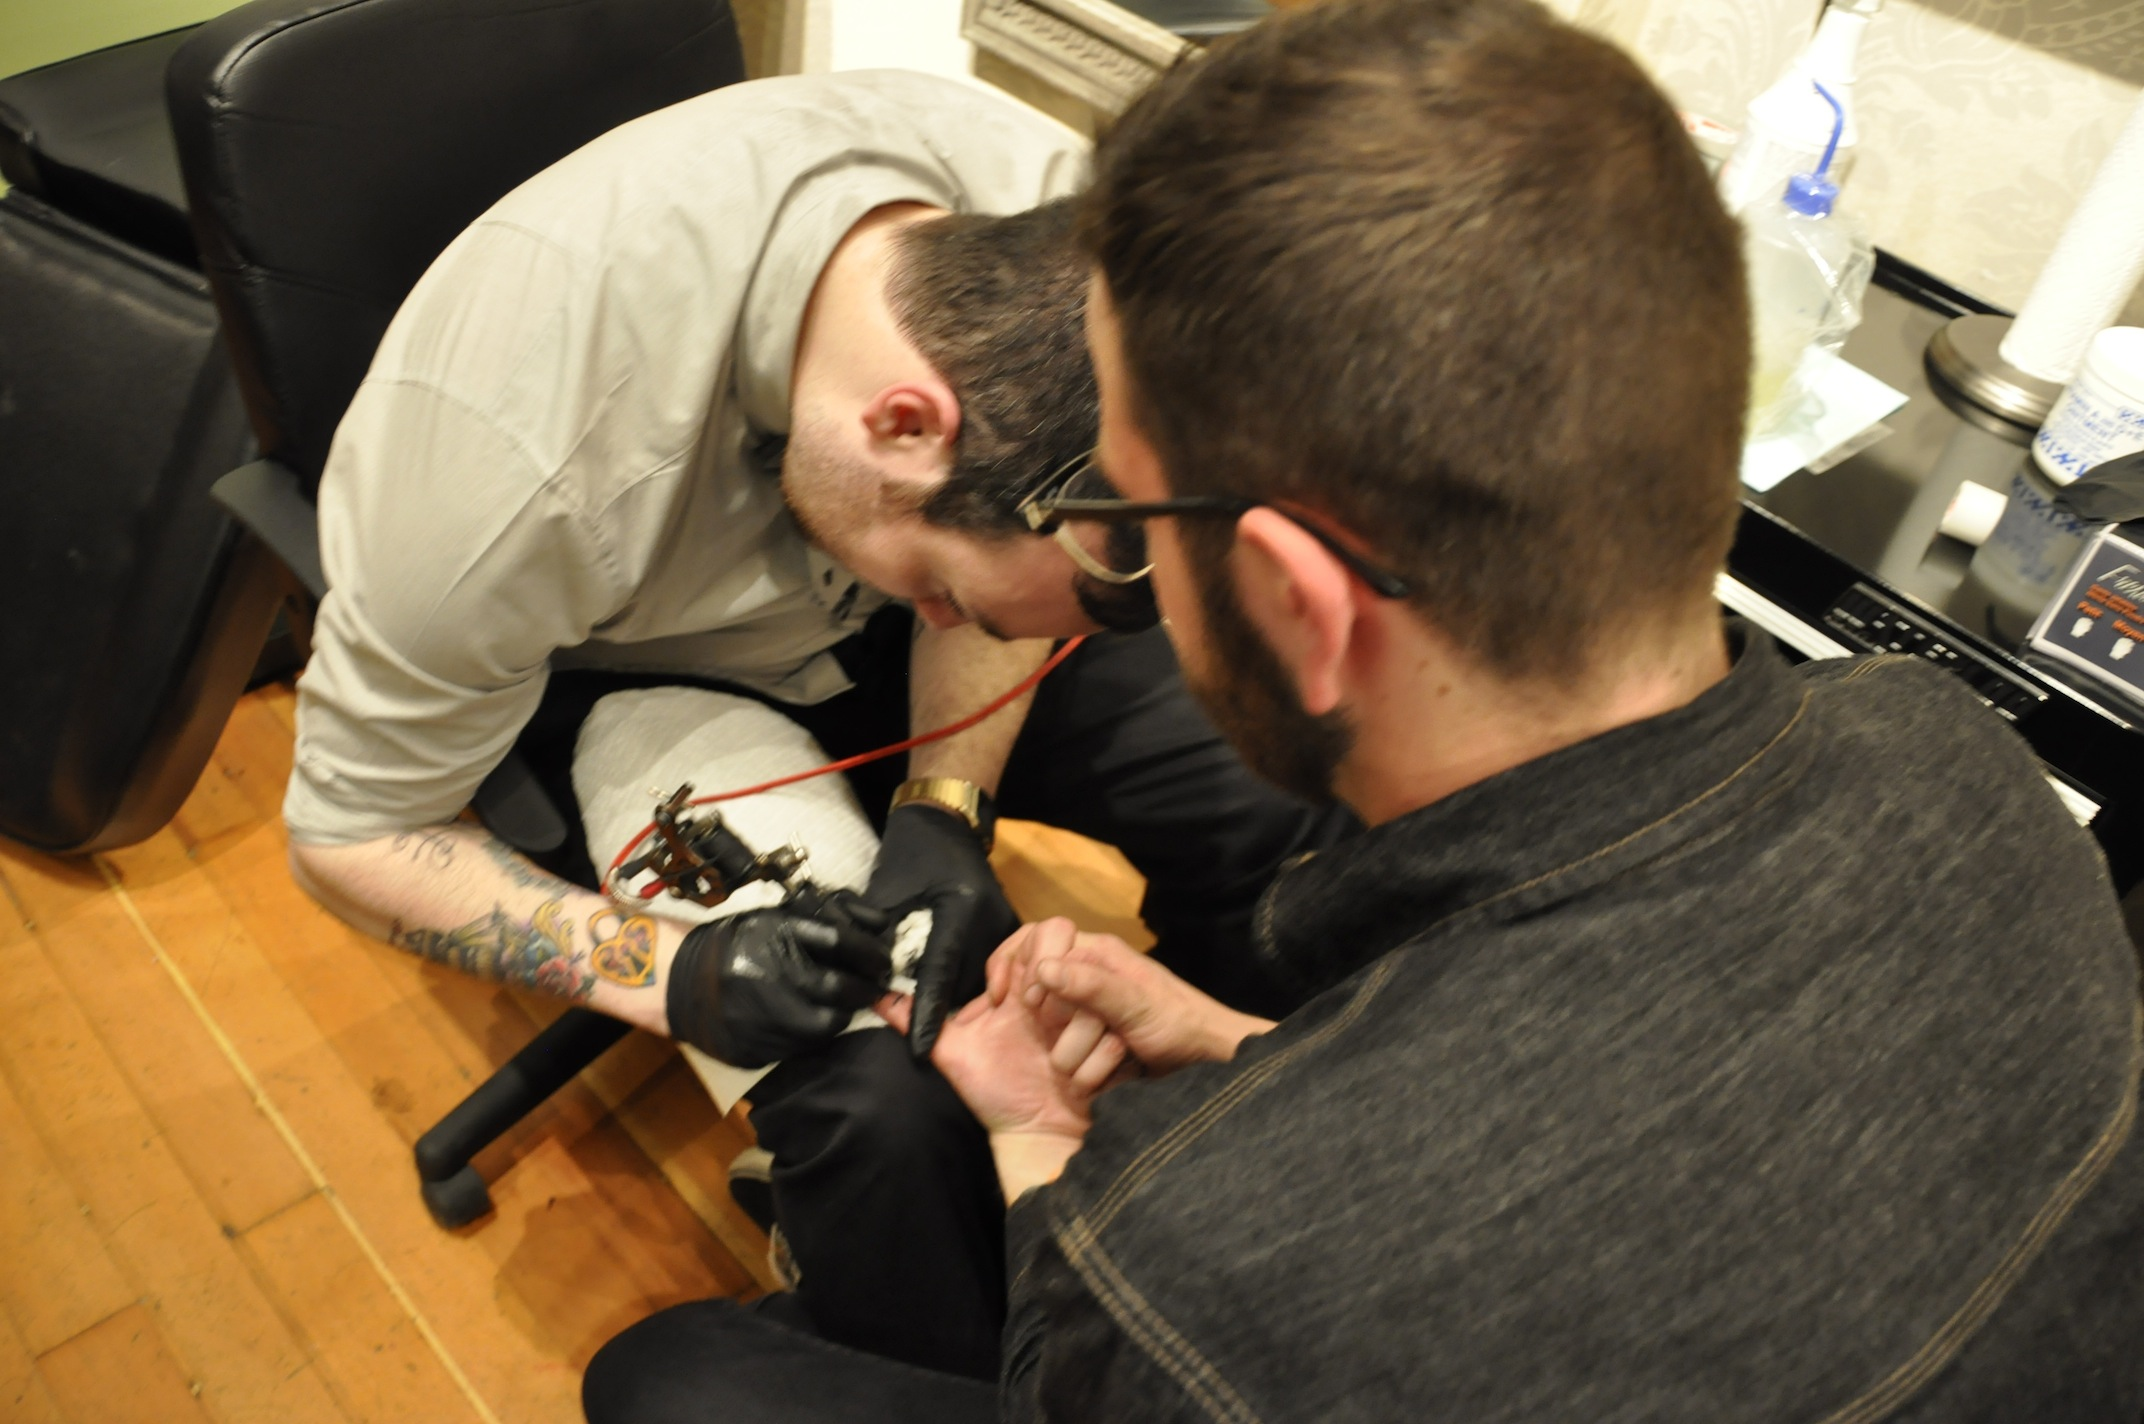 Gastown tattoo parlor grand opening for Gastown tattoo shops